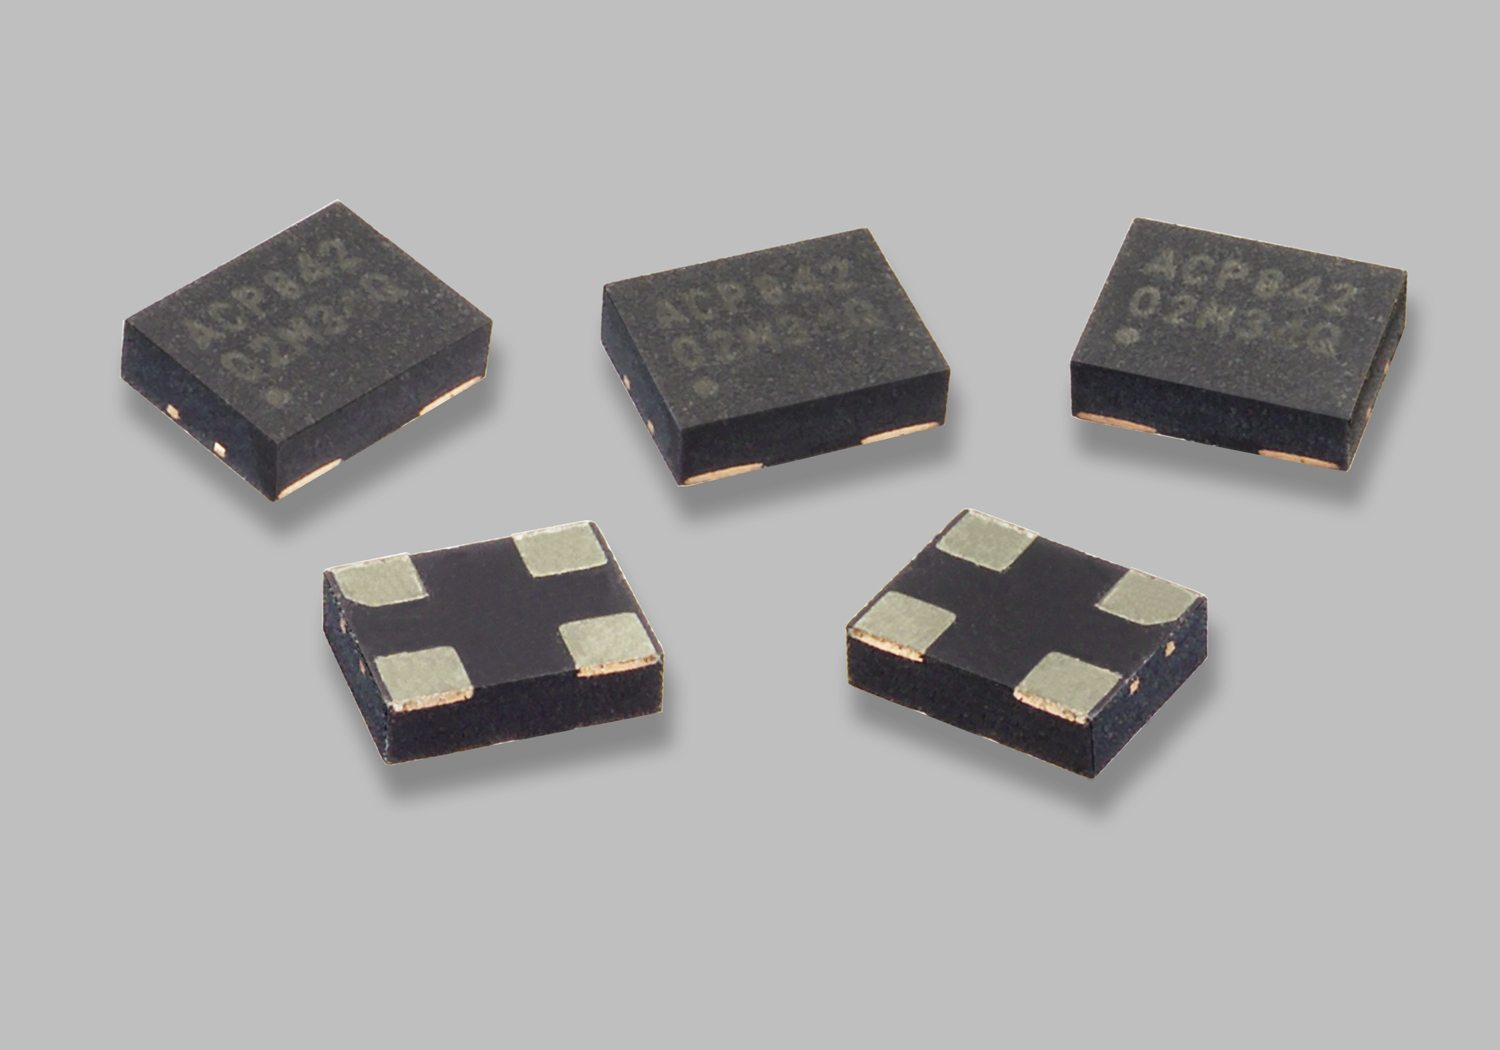 MEMS Oscillators – Have you REALLY considered using them?